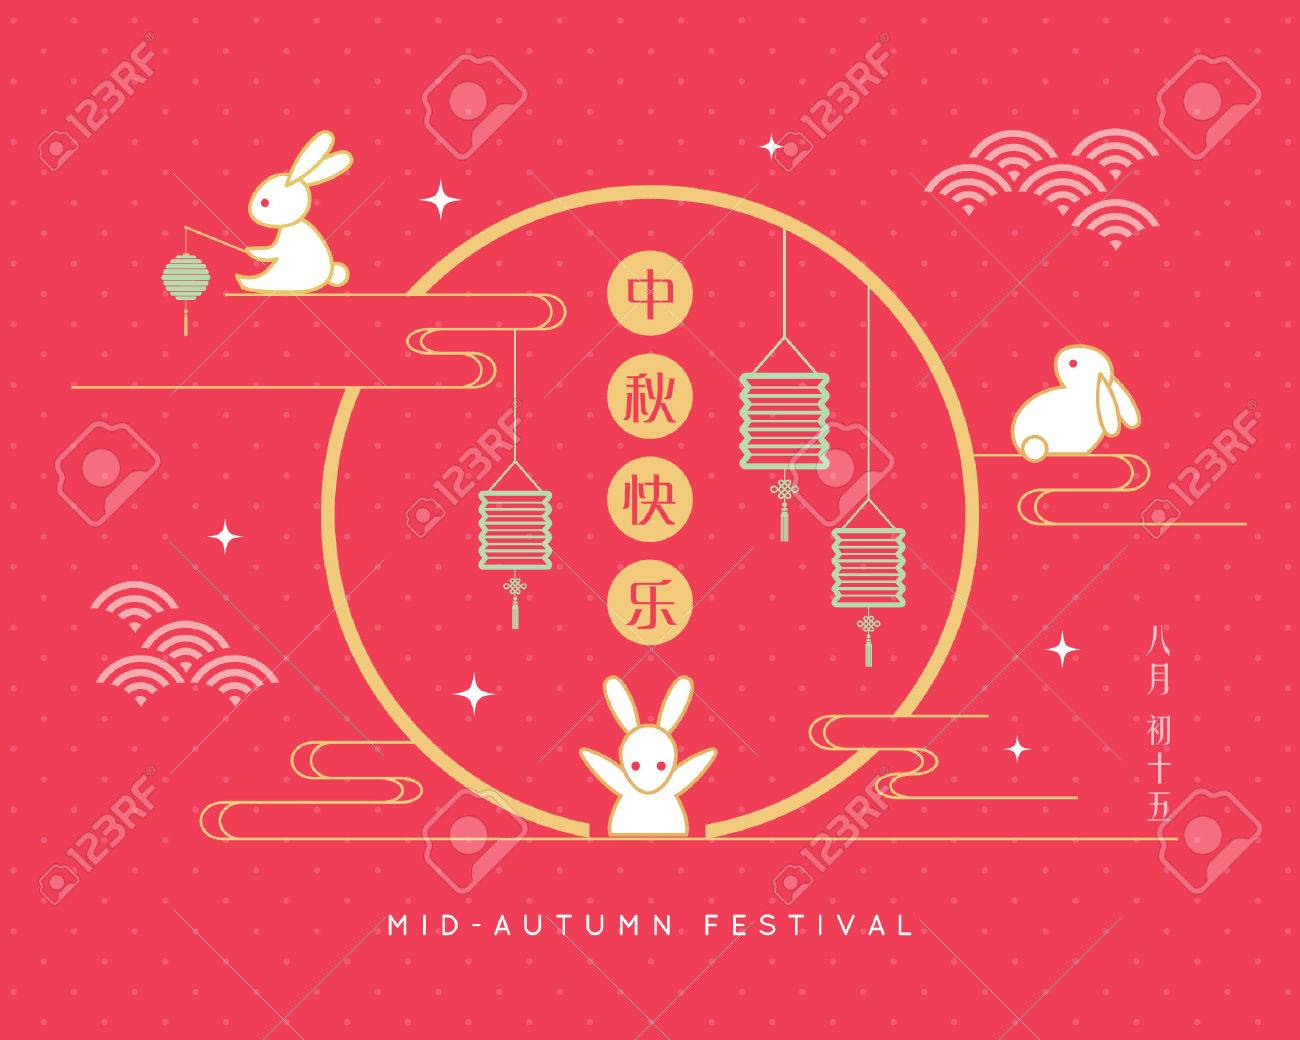 Mid autumn festival illustration of full moon and bunny on pink polka dot background. (caption: happy mid-autumn festival ; 15th august) - 84720292